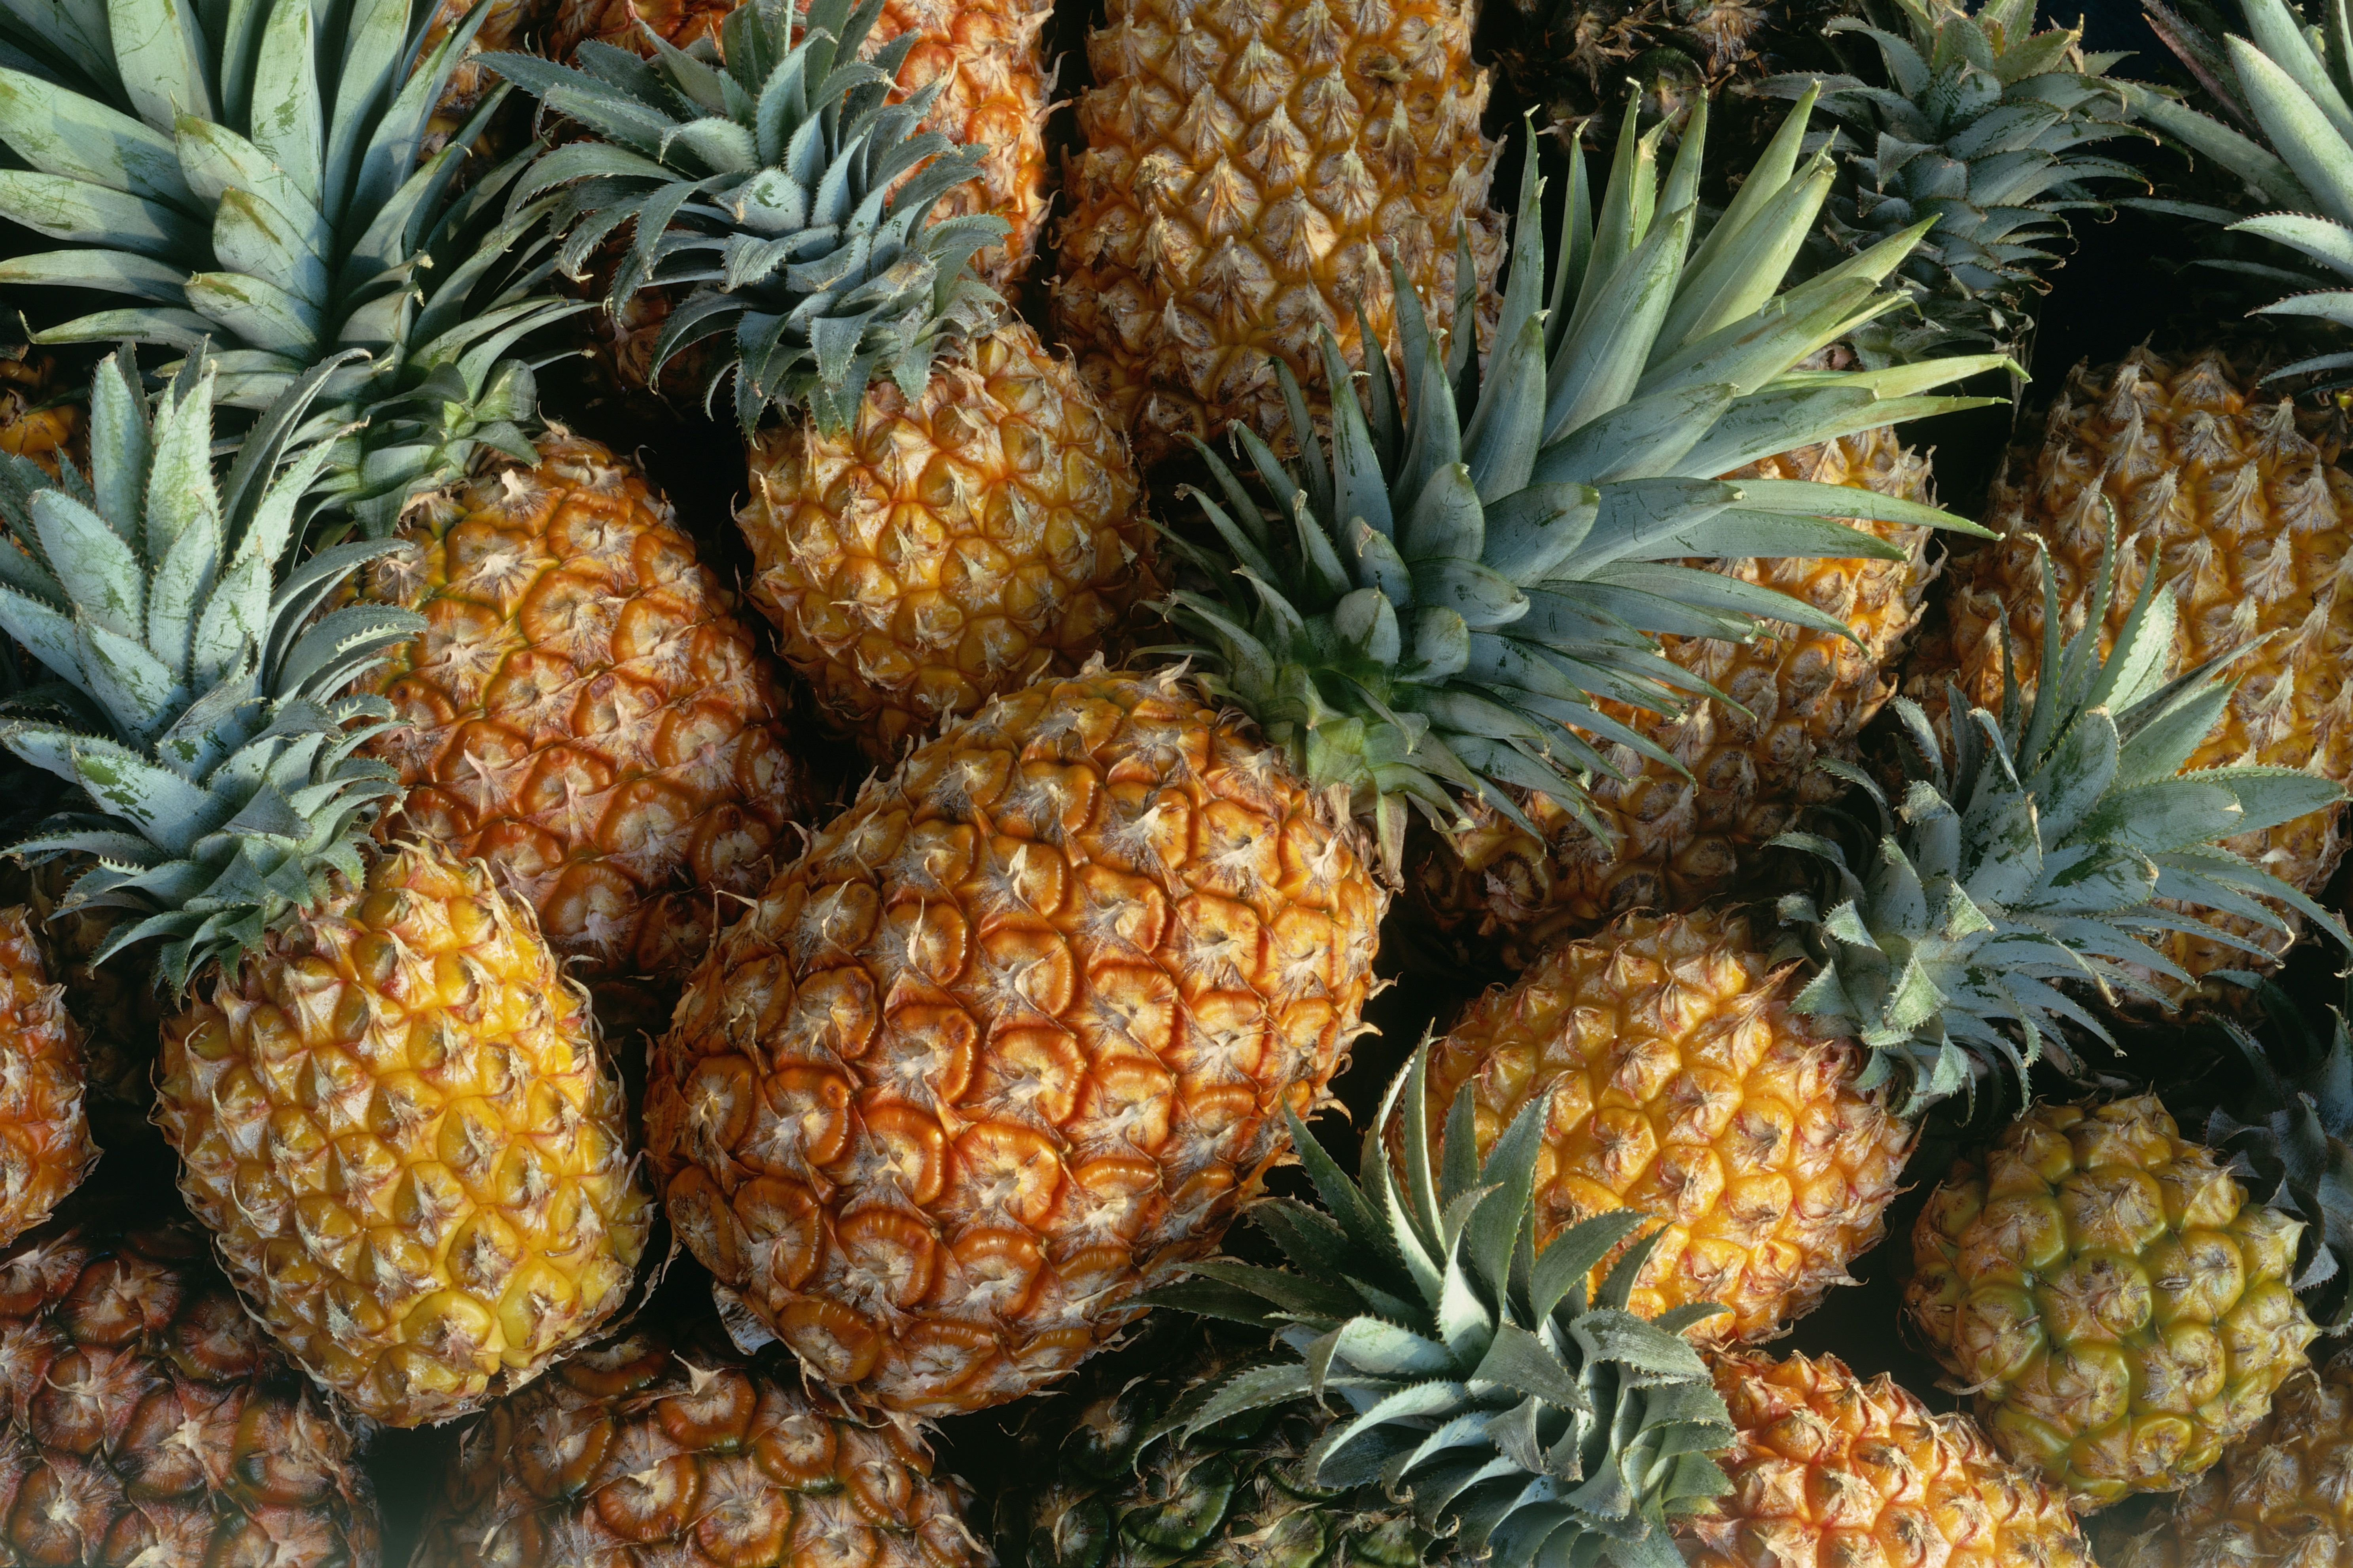 Fresh pineapple specimens, ready to eat with a little prep